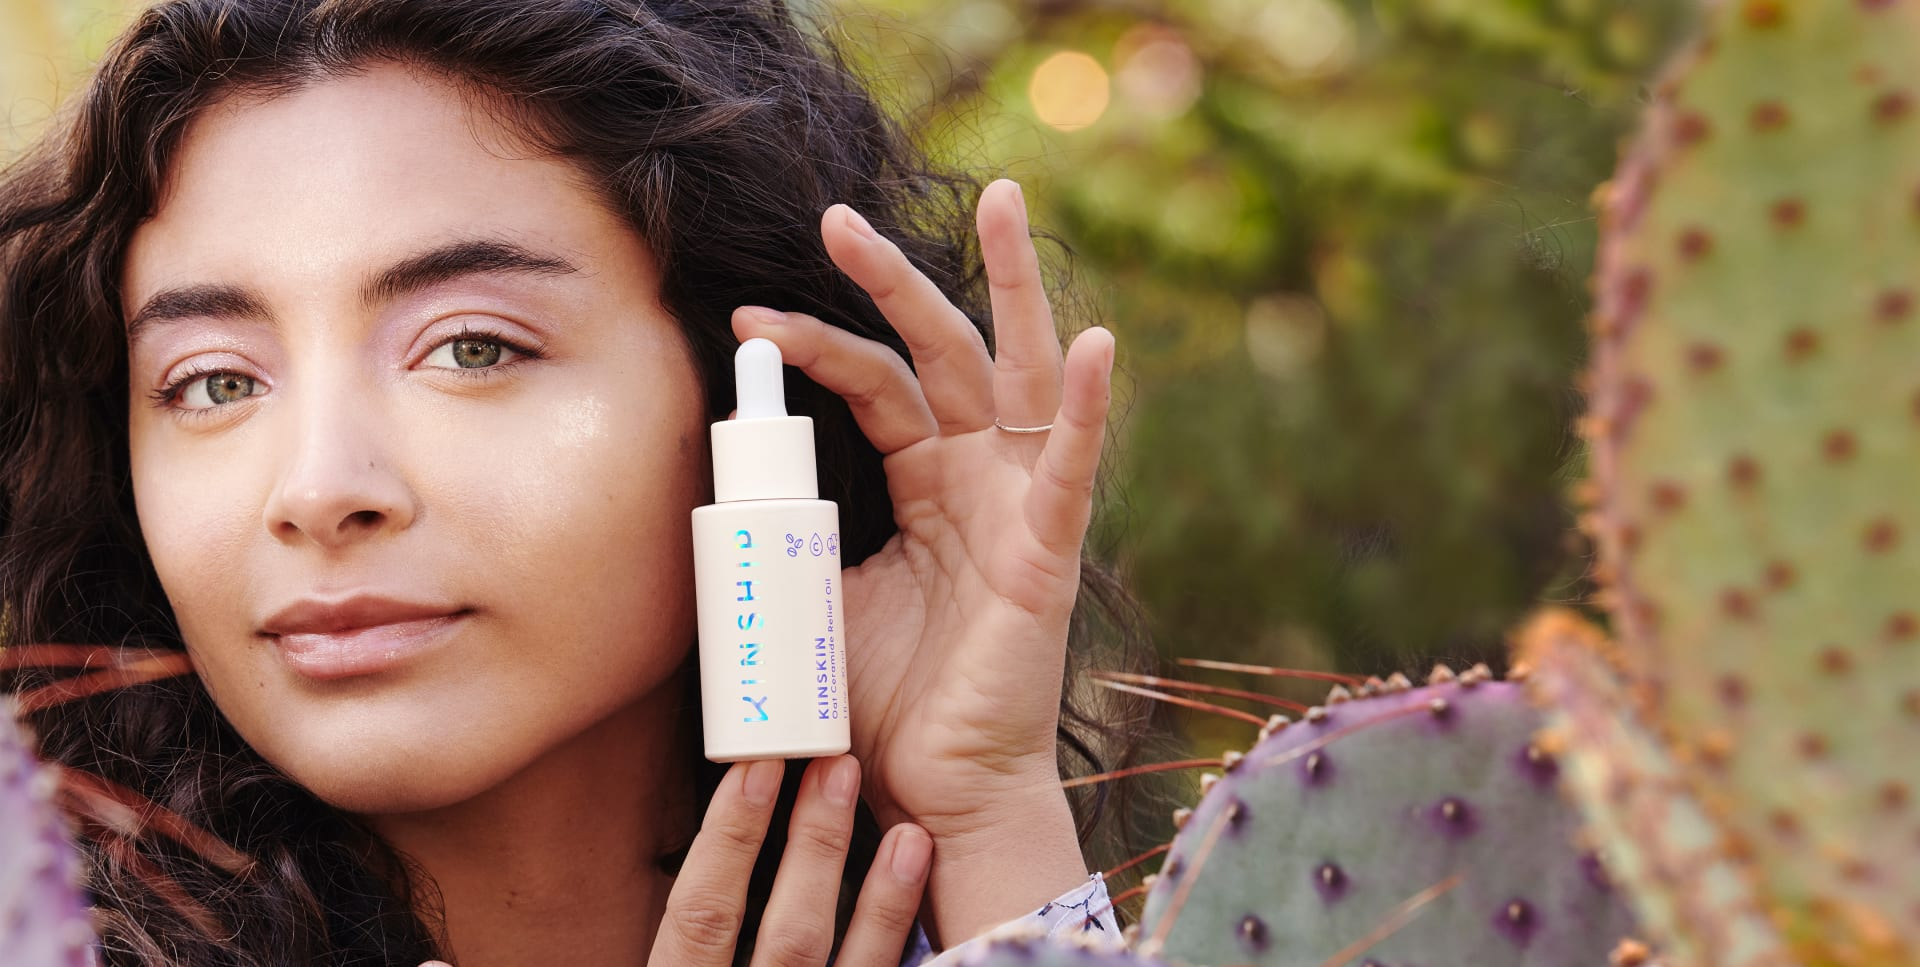 Adriana, standing in a prickly pear cactus garden, holds Kinskin Oat Ceramide Face Oil bottle up next to their cheek